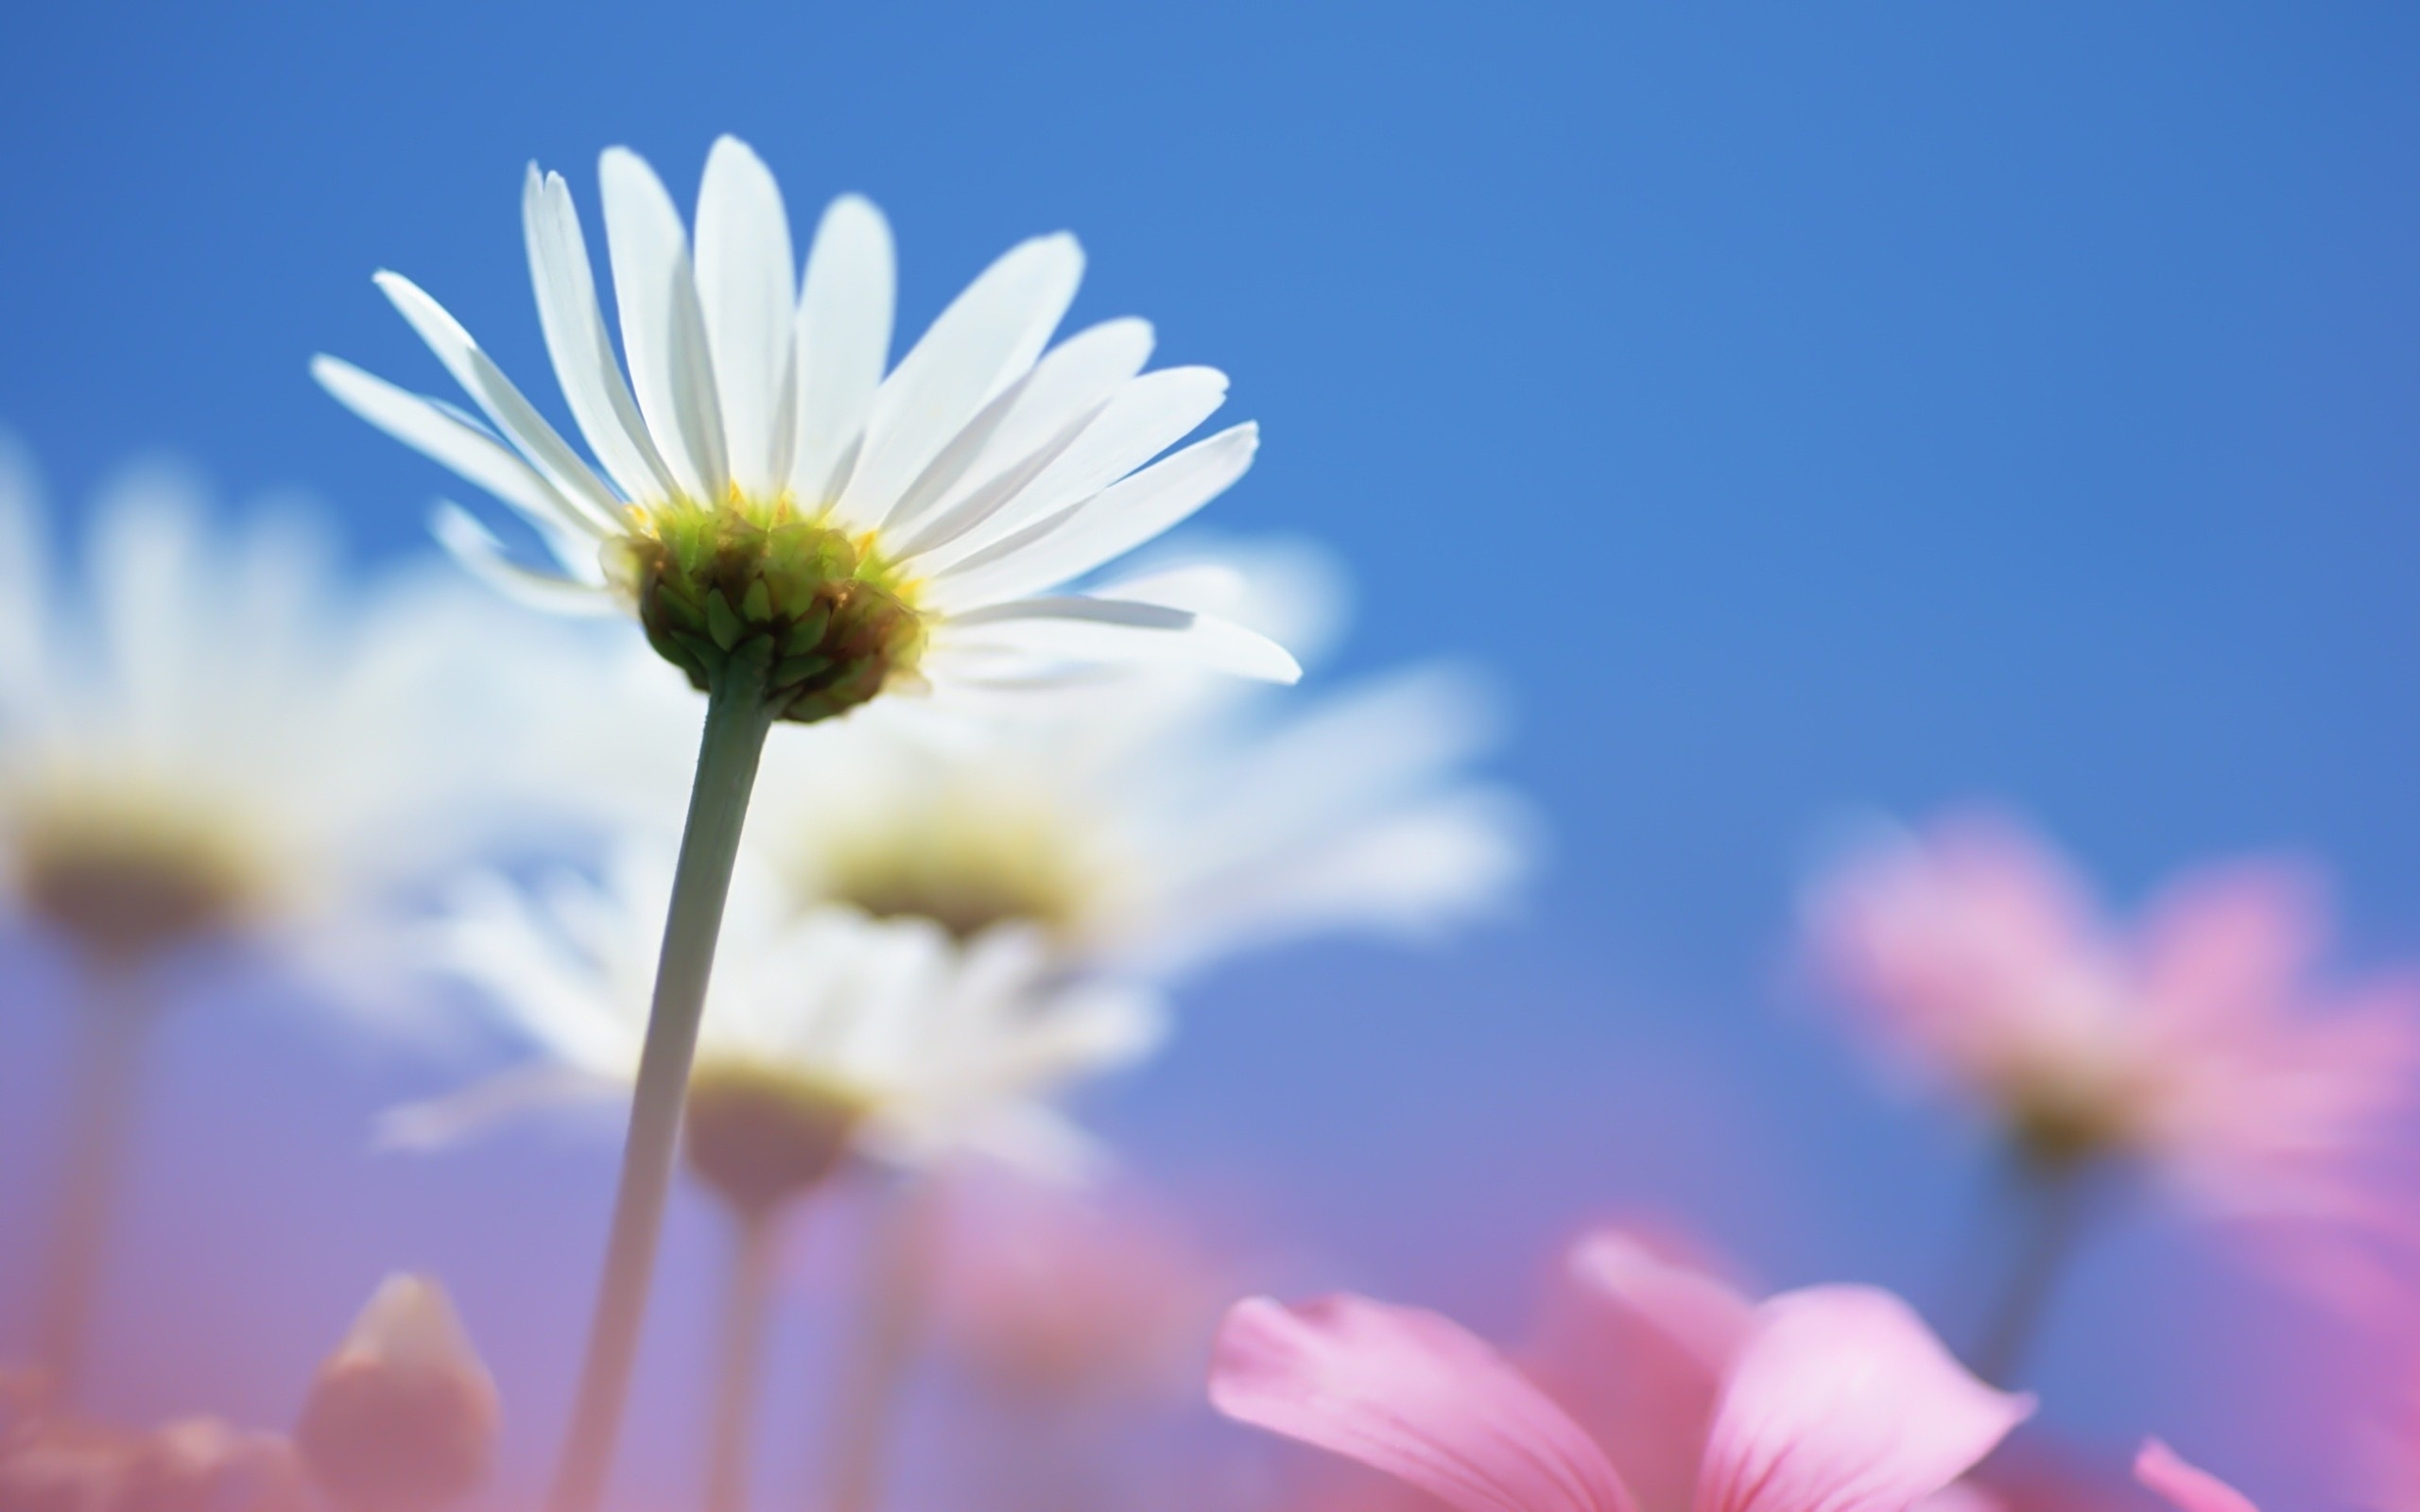 Summer Daisy Flower The Riverdale Y